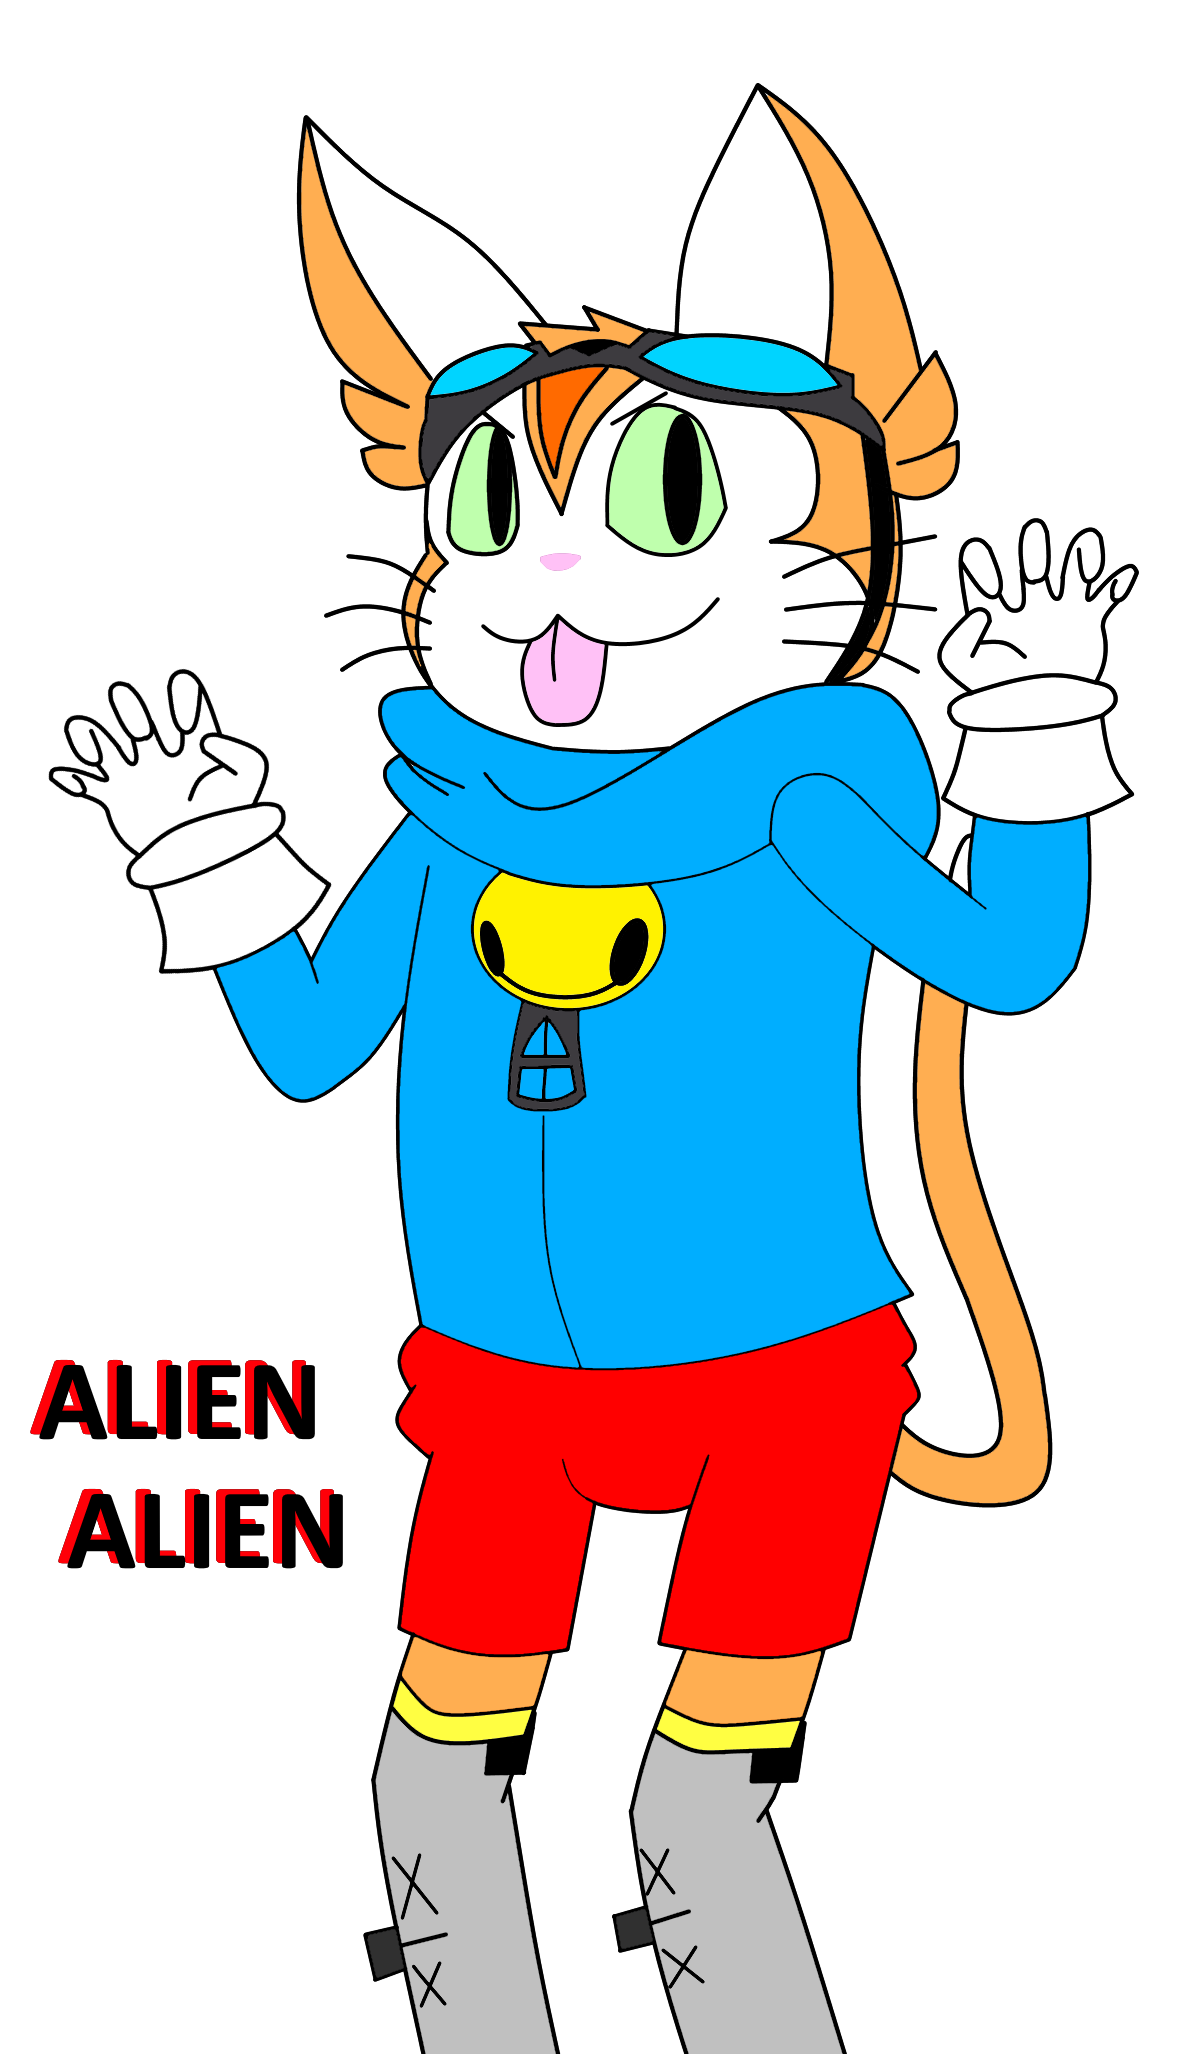 Blinx but he's doing that pose from Alien Alien by Wo0oooo0my